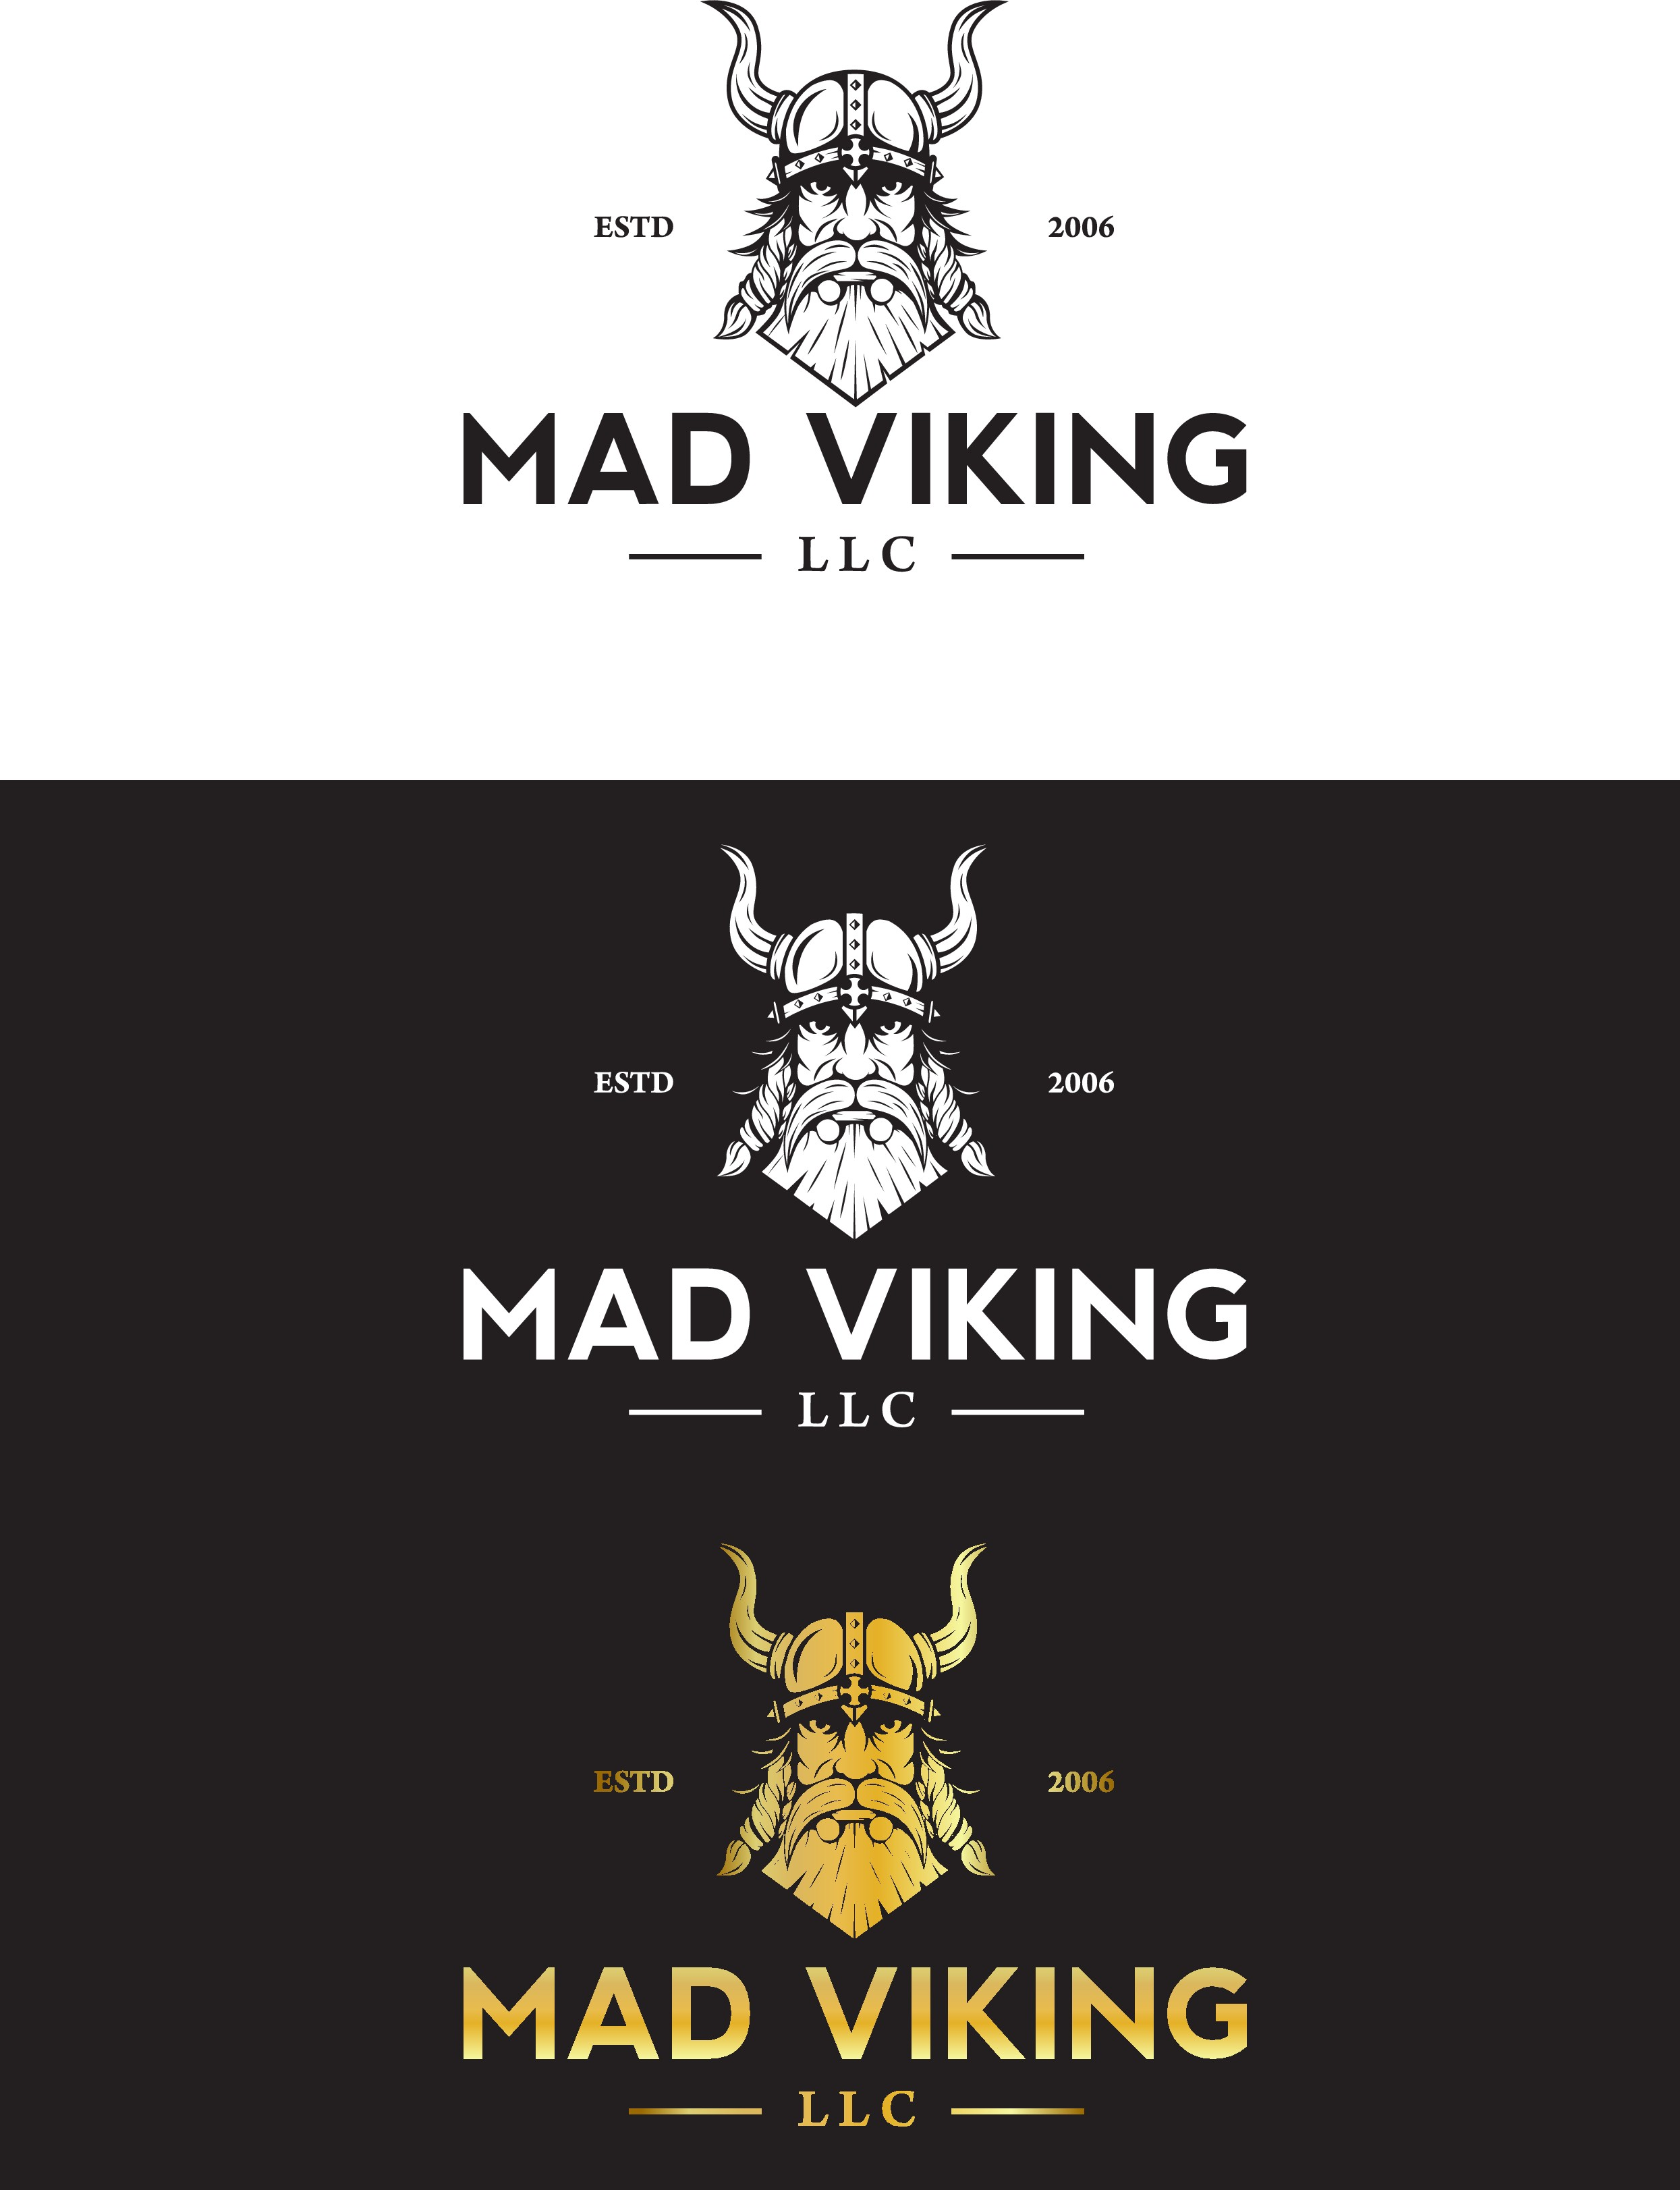 Search for the Mad Viking